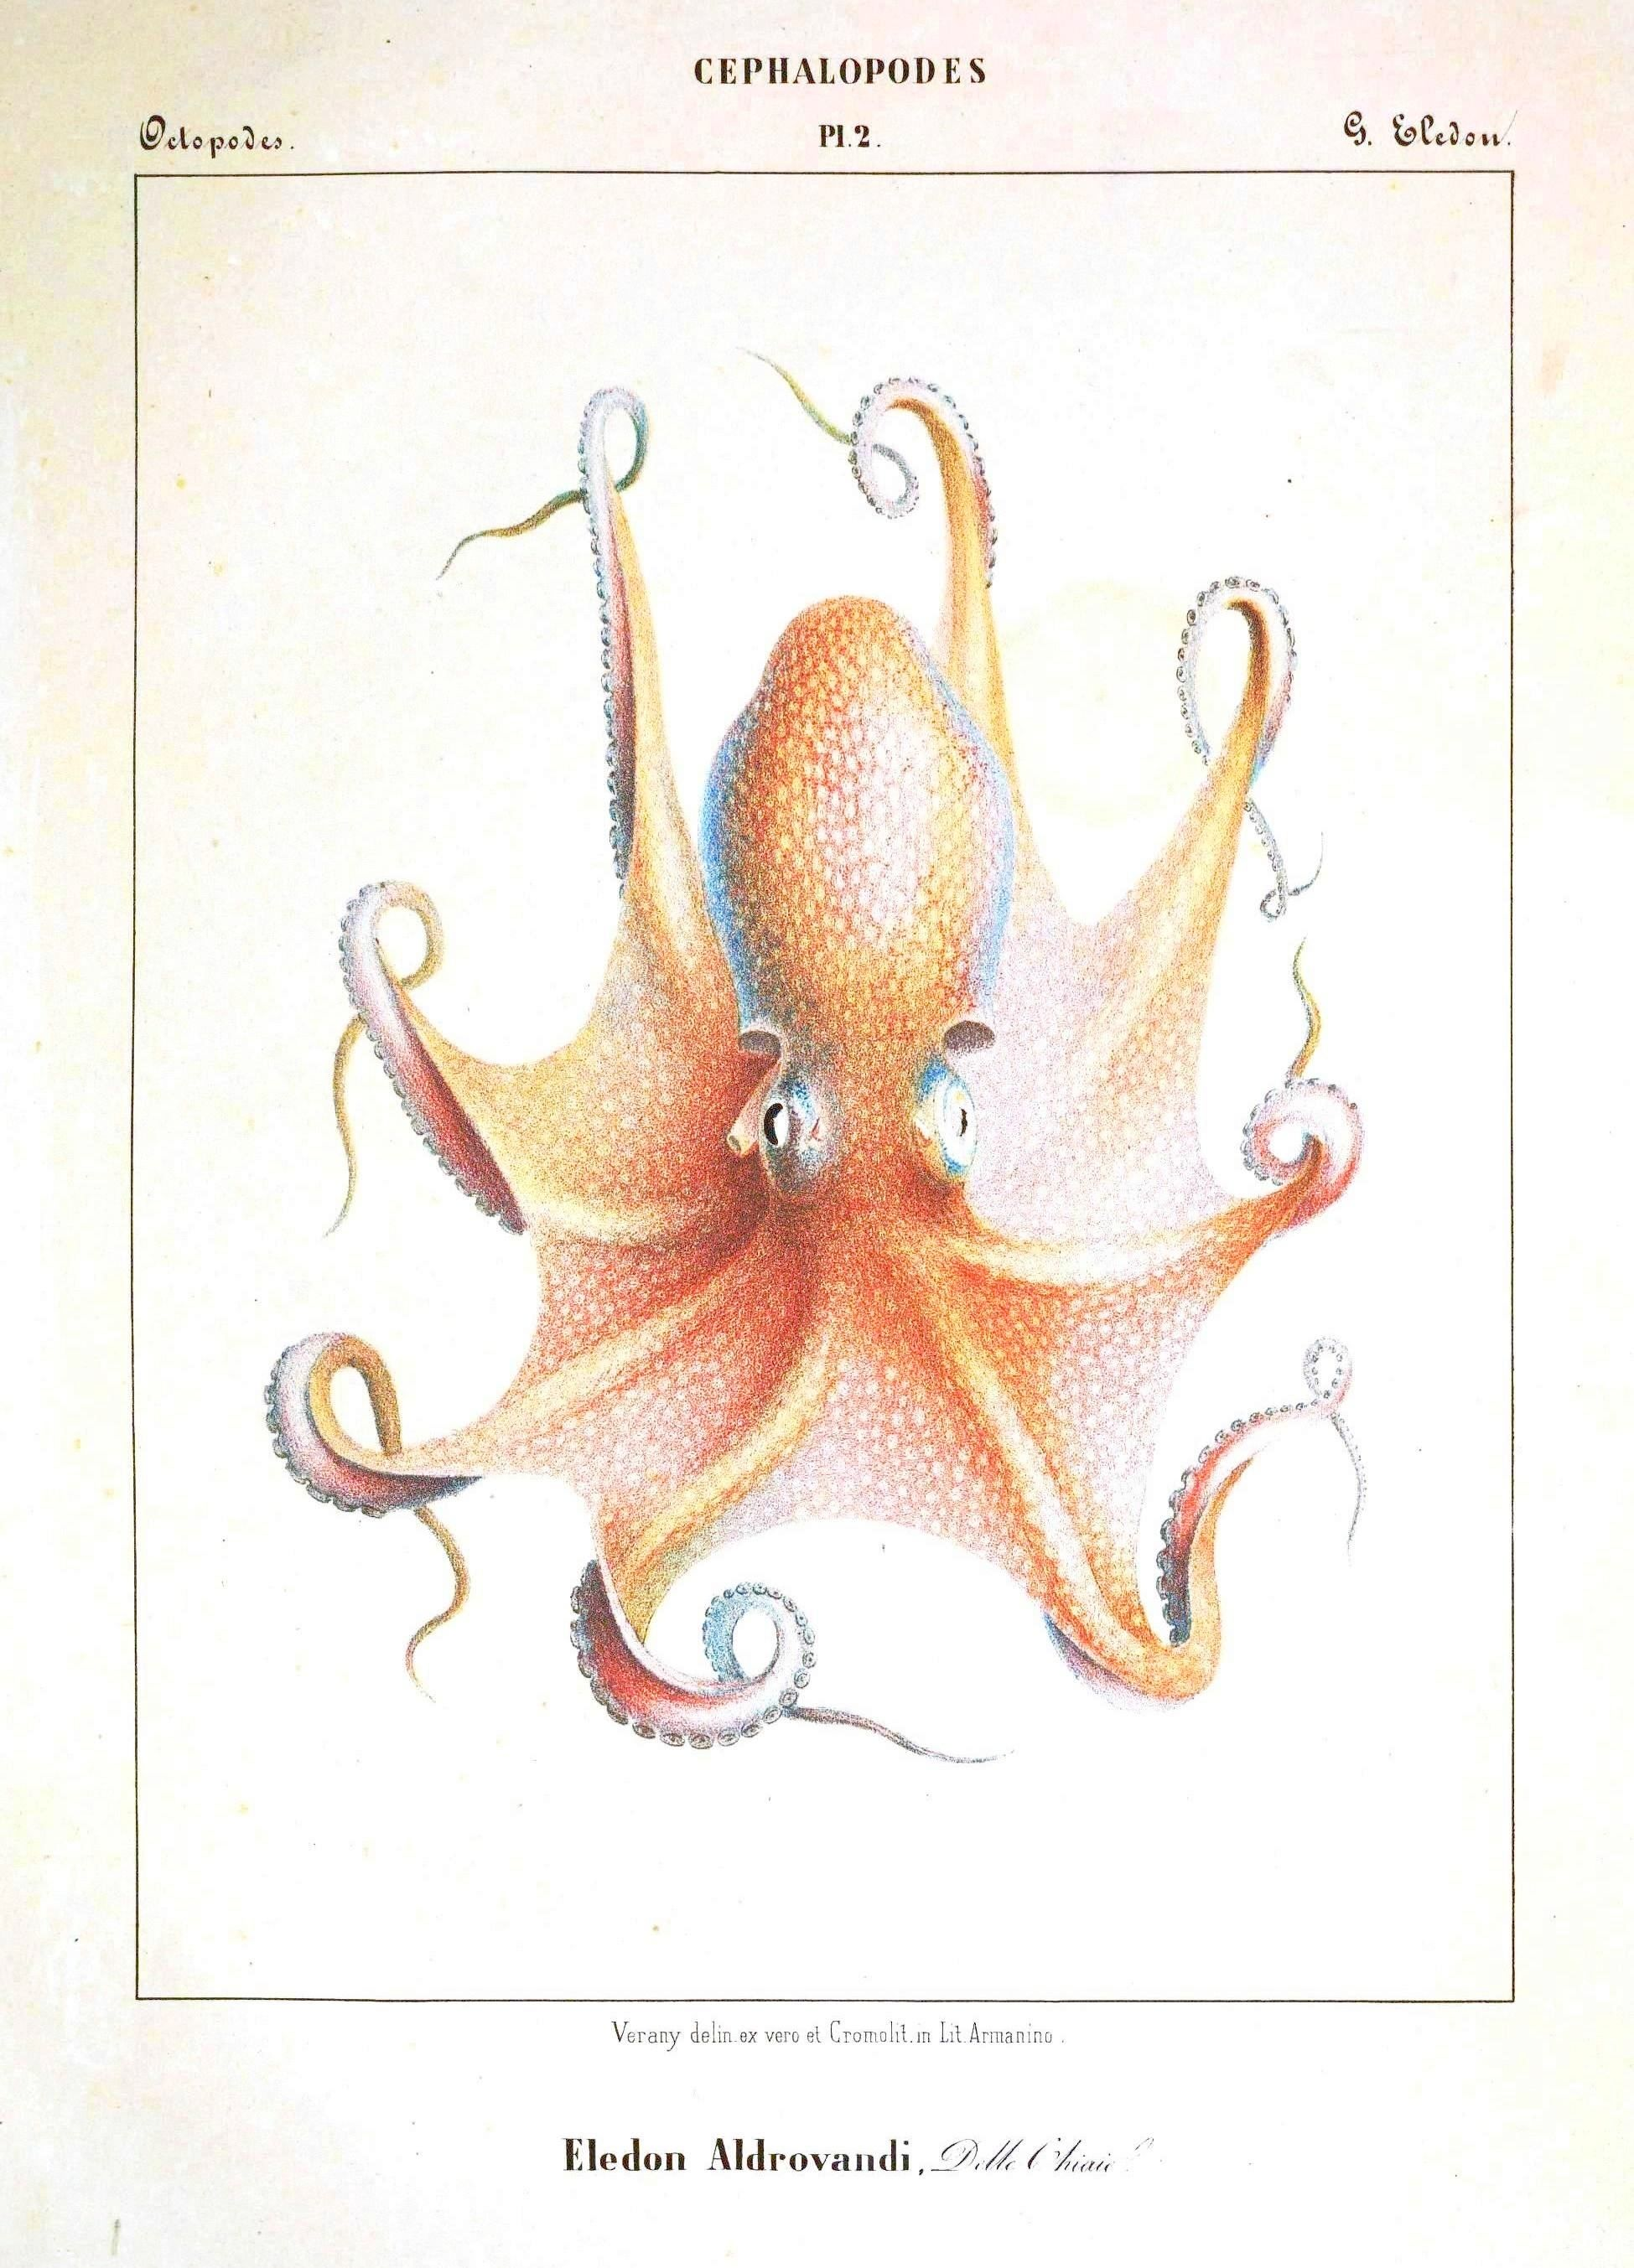 I love all the octopi prints in this vintage book! | Wall Art I Want ...